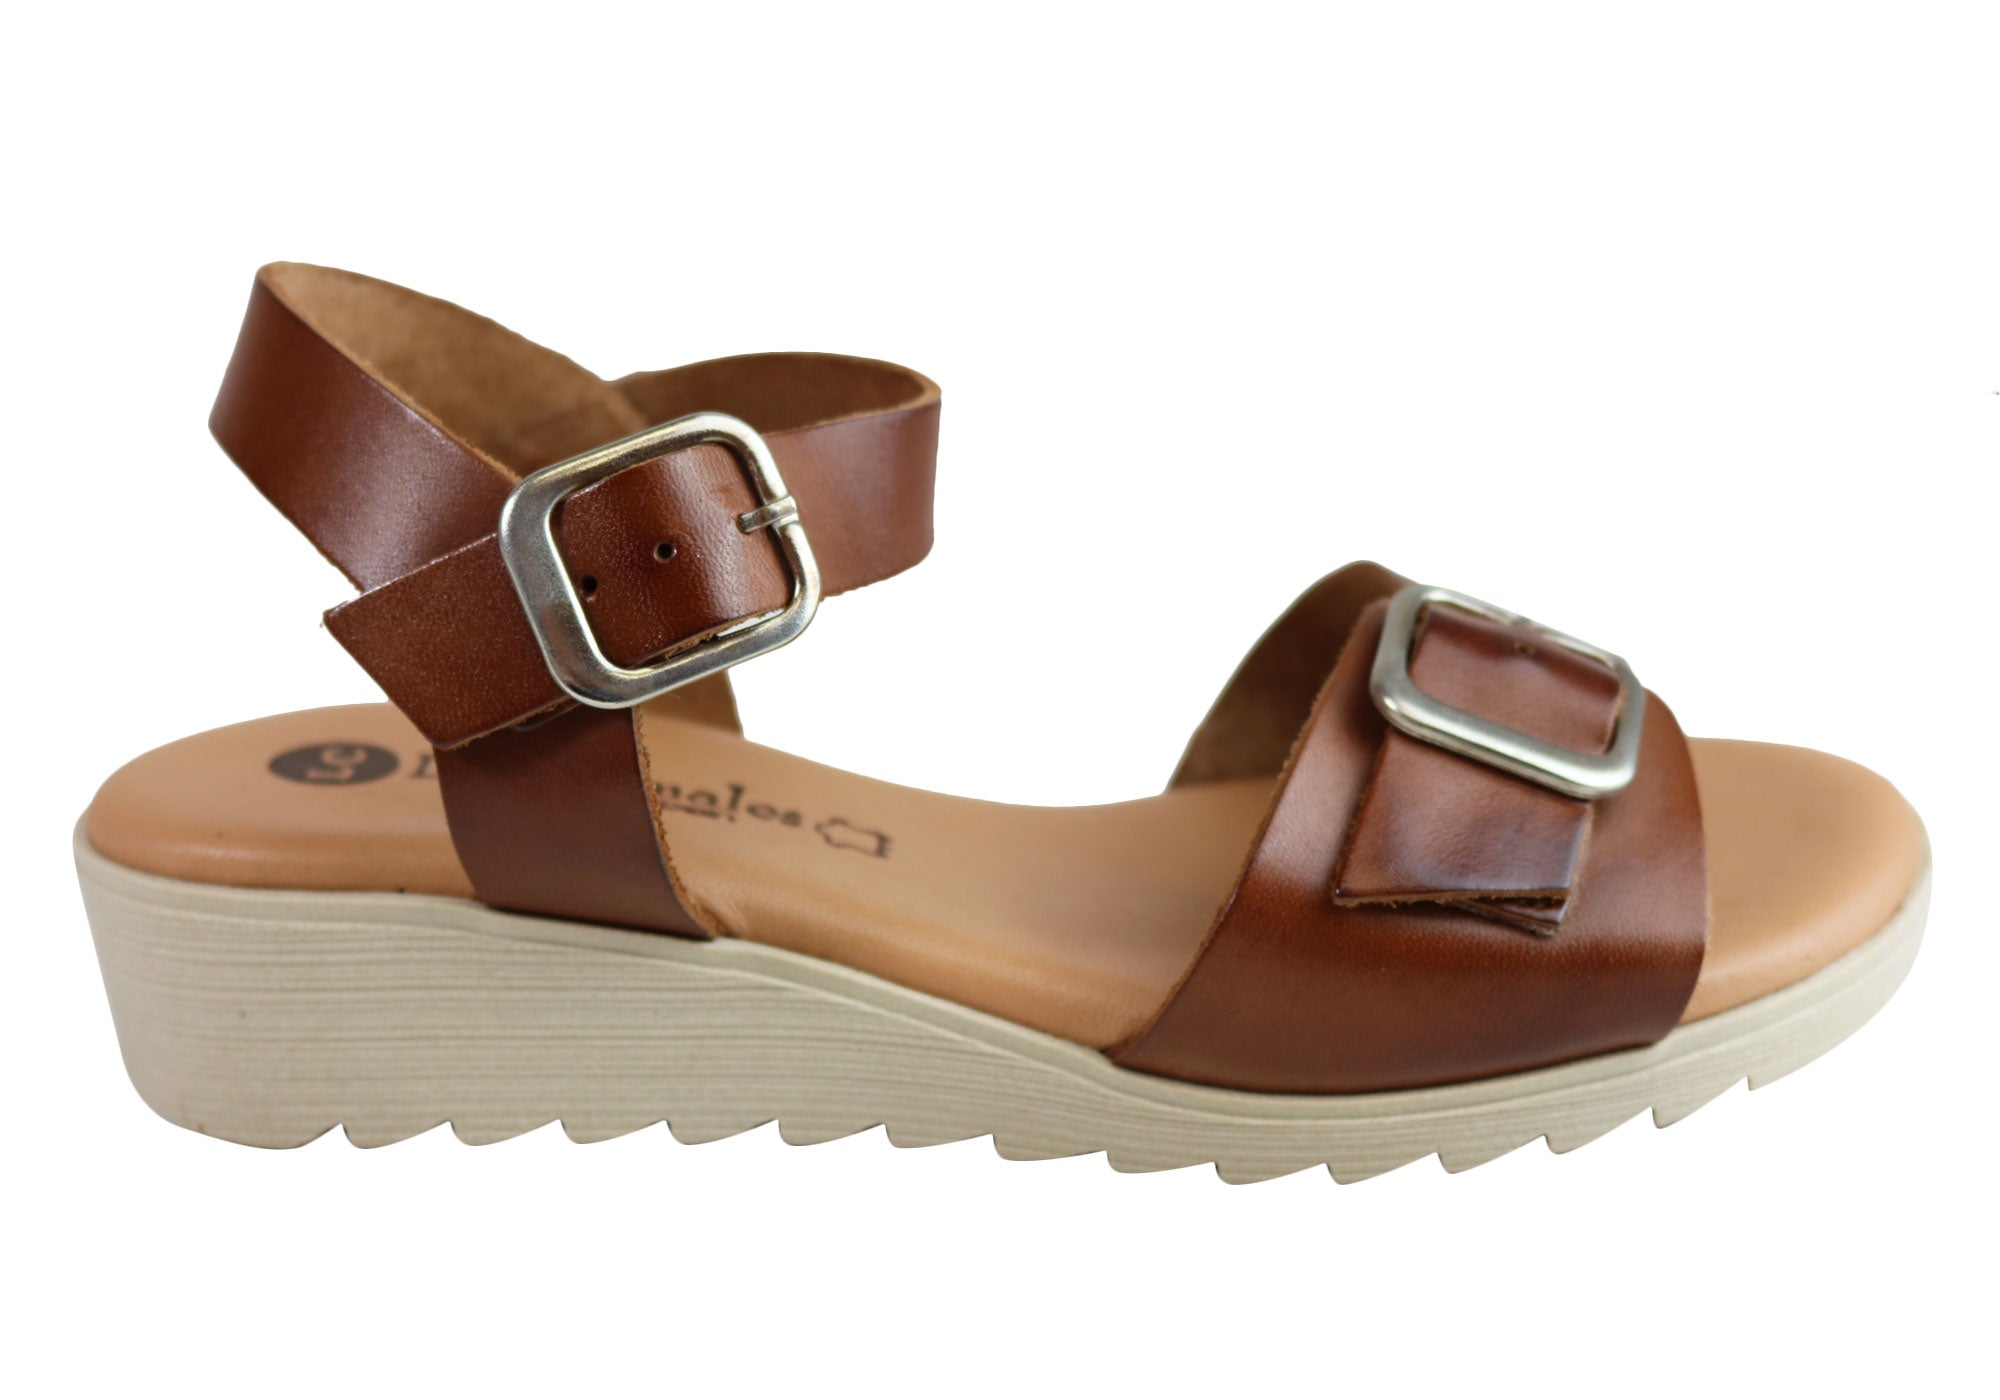 70b35351e69 Lola Canales Koz Womens Comfortable Soft Leather Sandals Made In ...